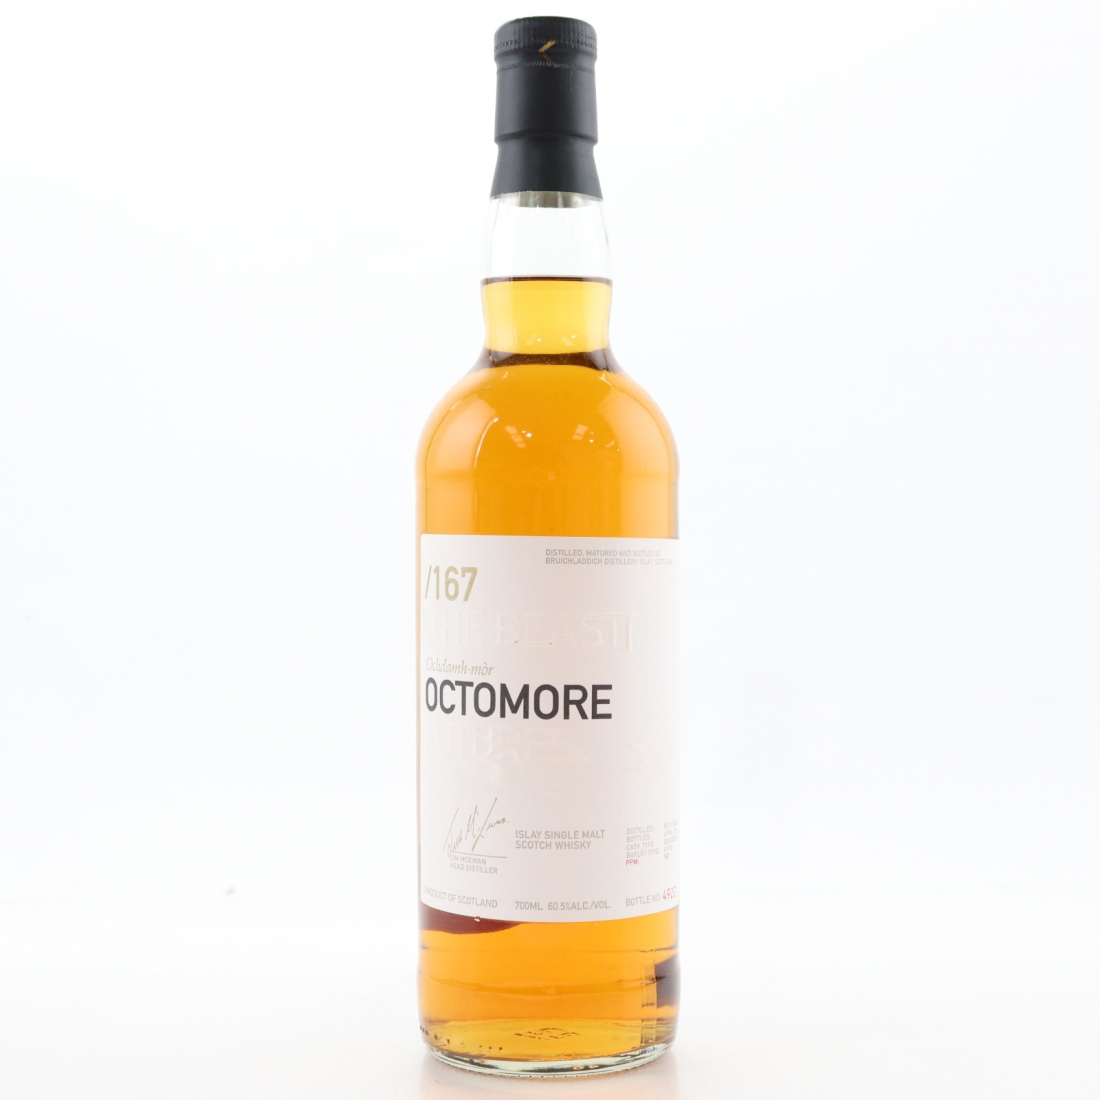 Octomore 2004 Futures / The Beast